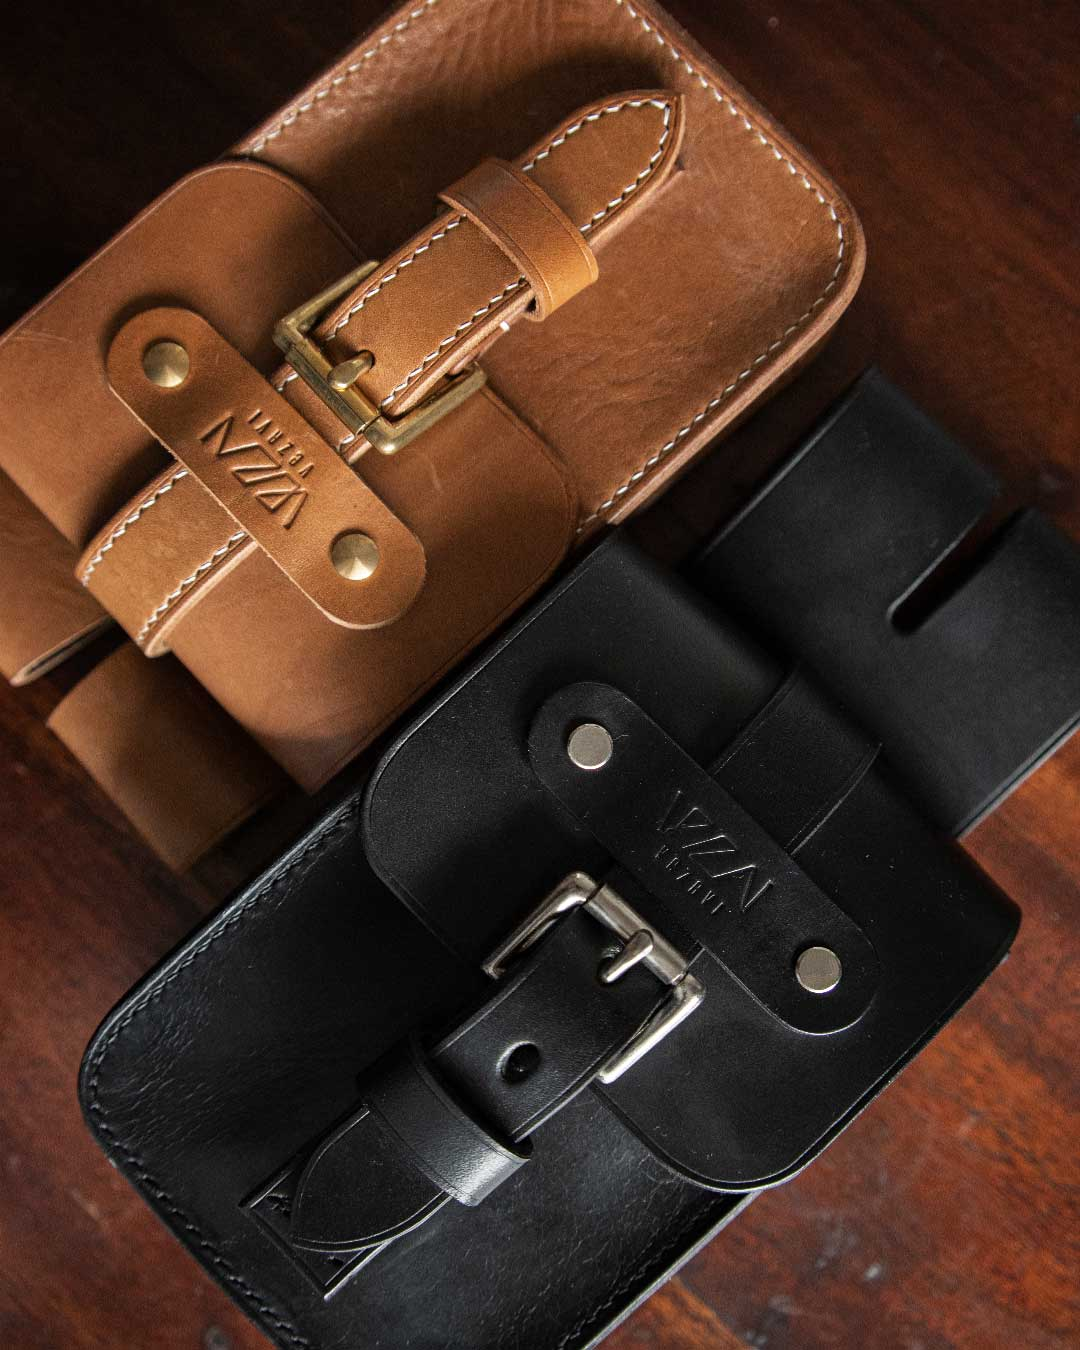 Unisex belt bag | Holster bag | Suspender bag